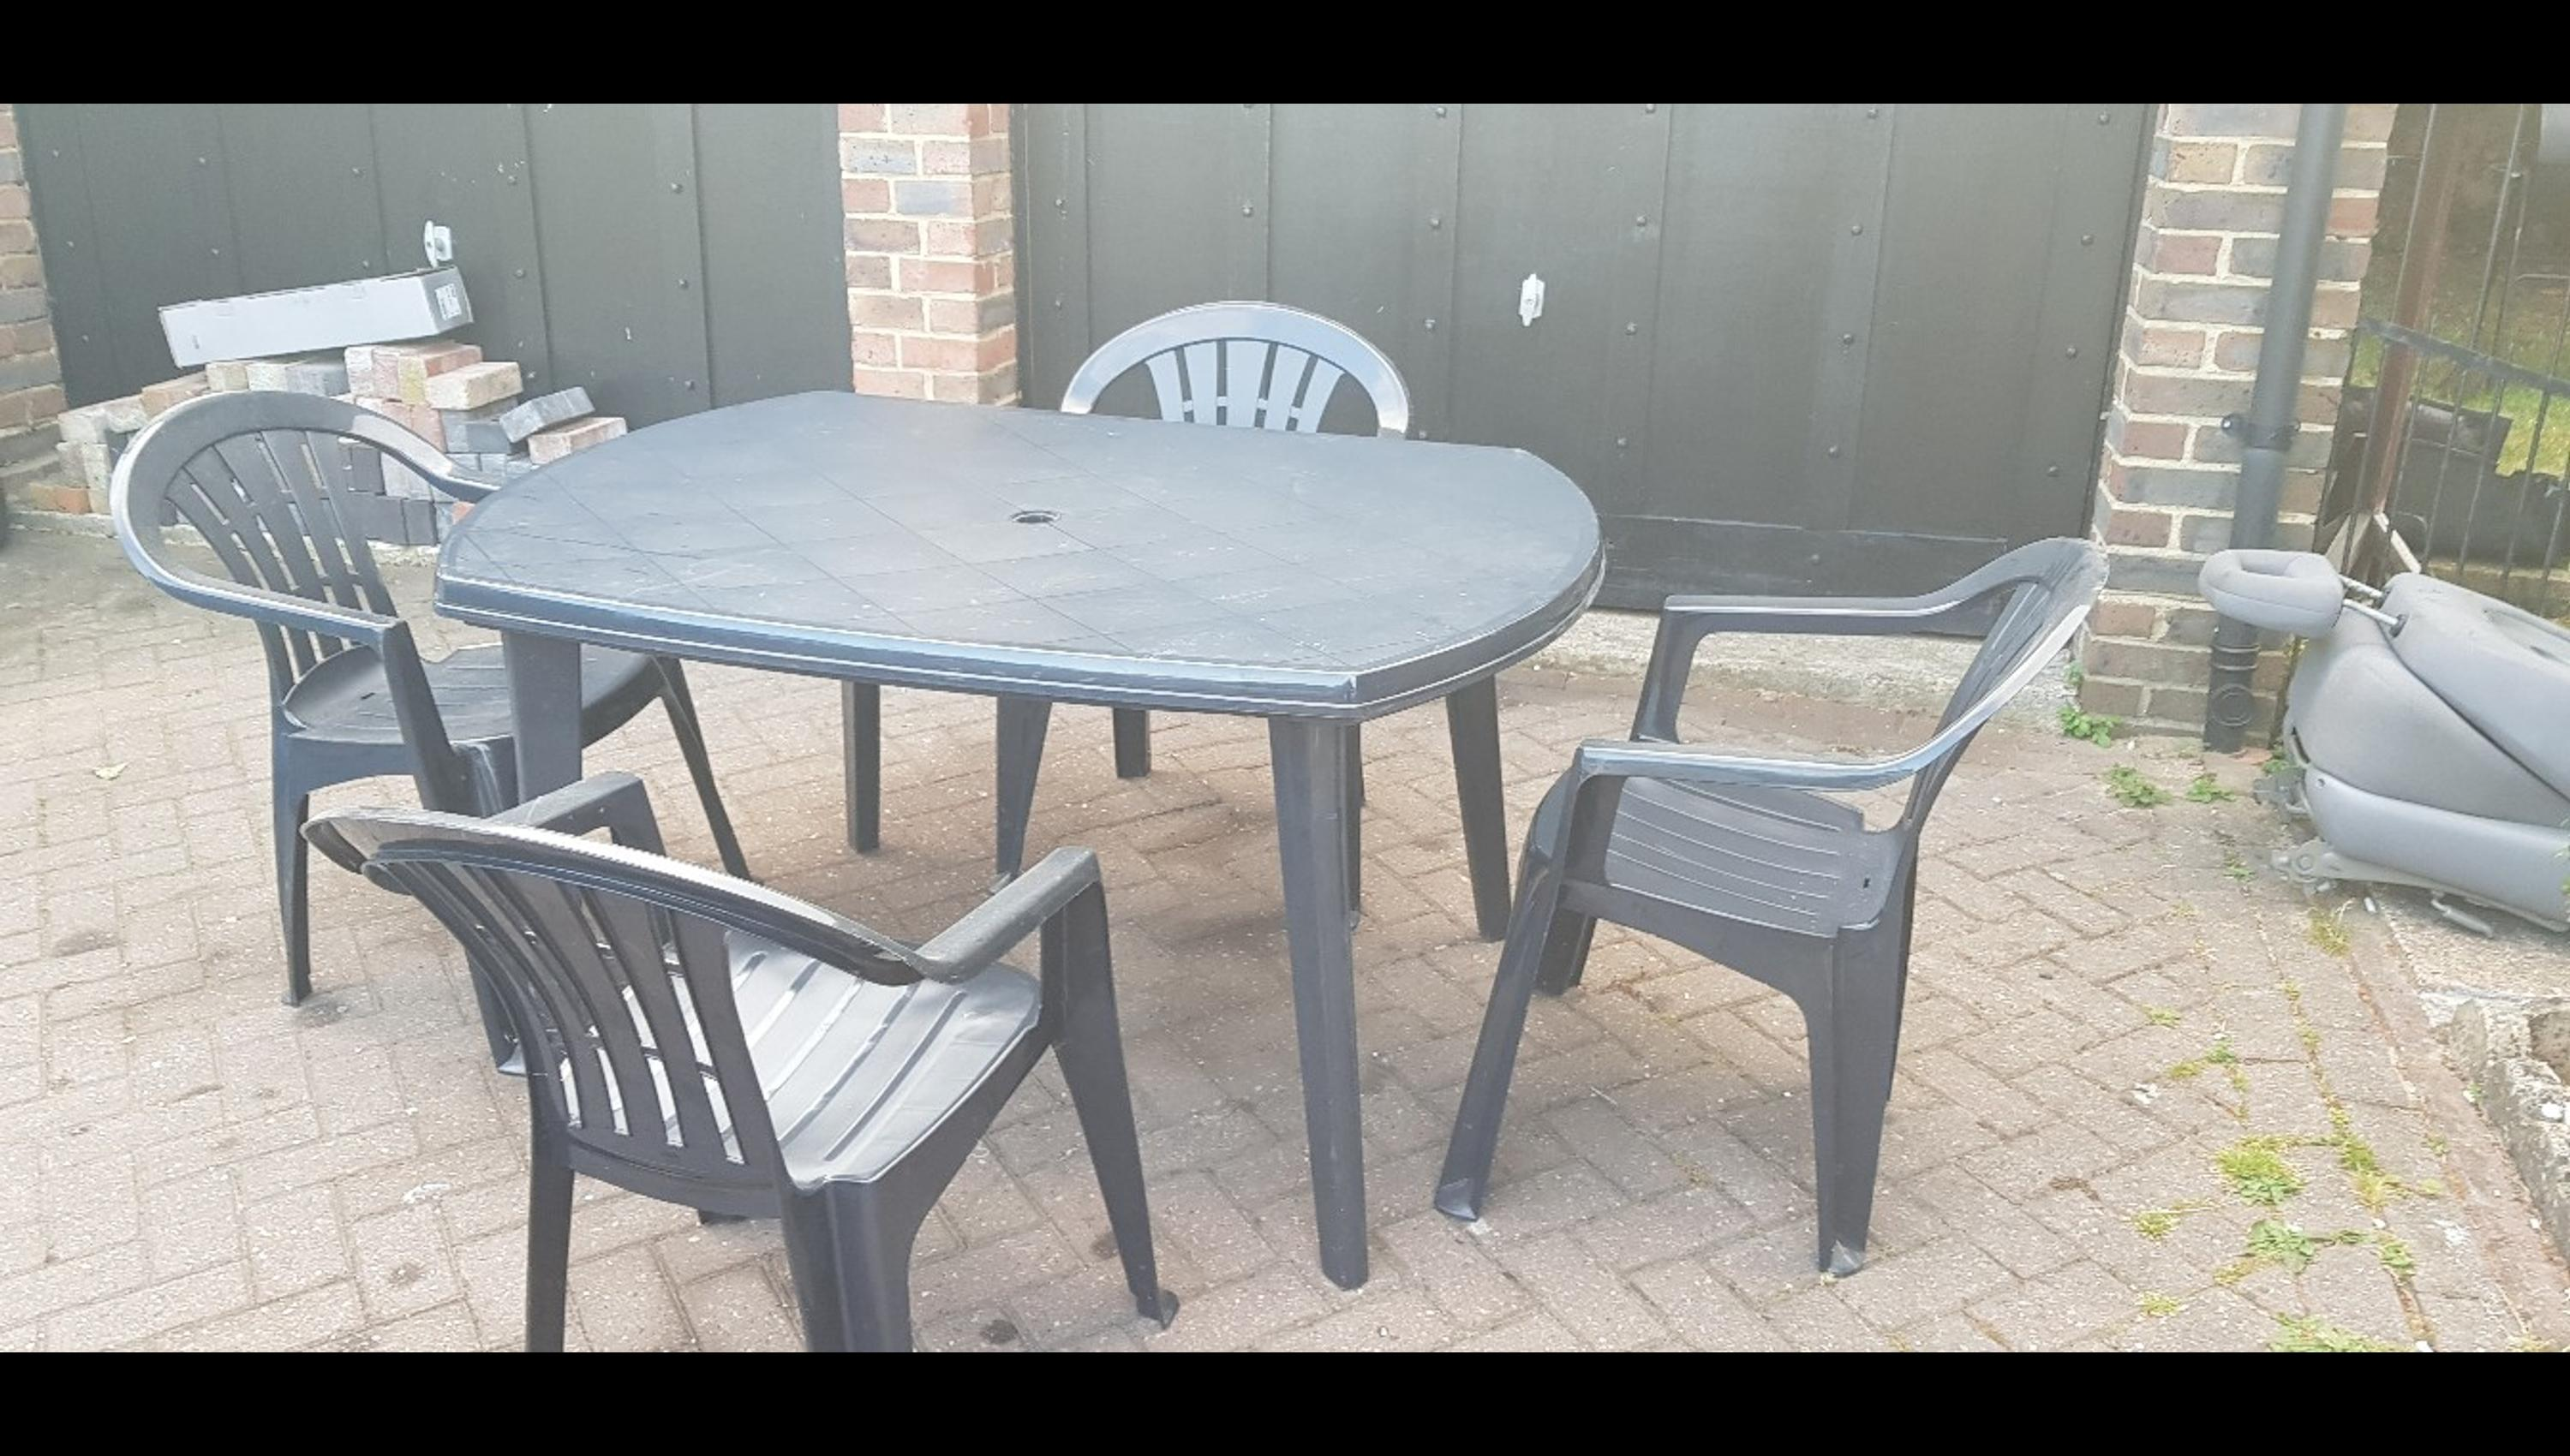 Incredible Garden Table Elise Graphite With 4 Chairs Bralicious Painted Fabric Chair Ideas Braliciousco